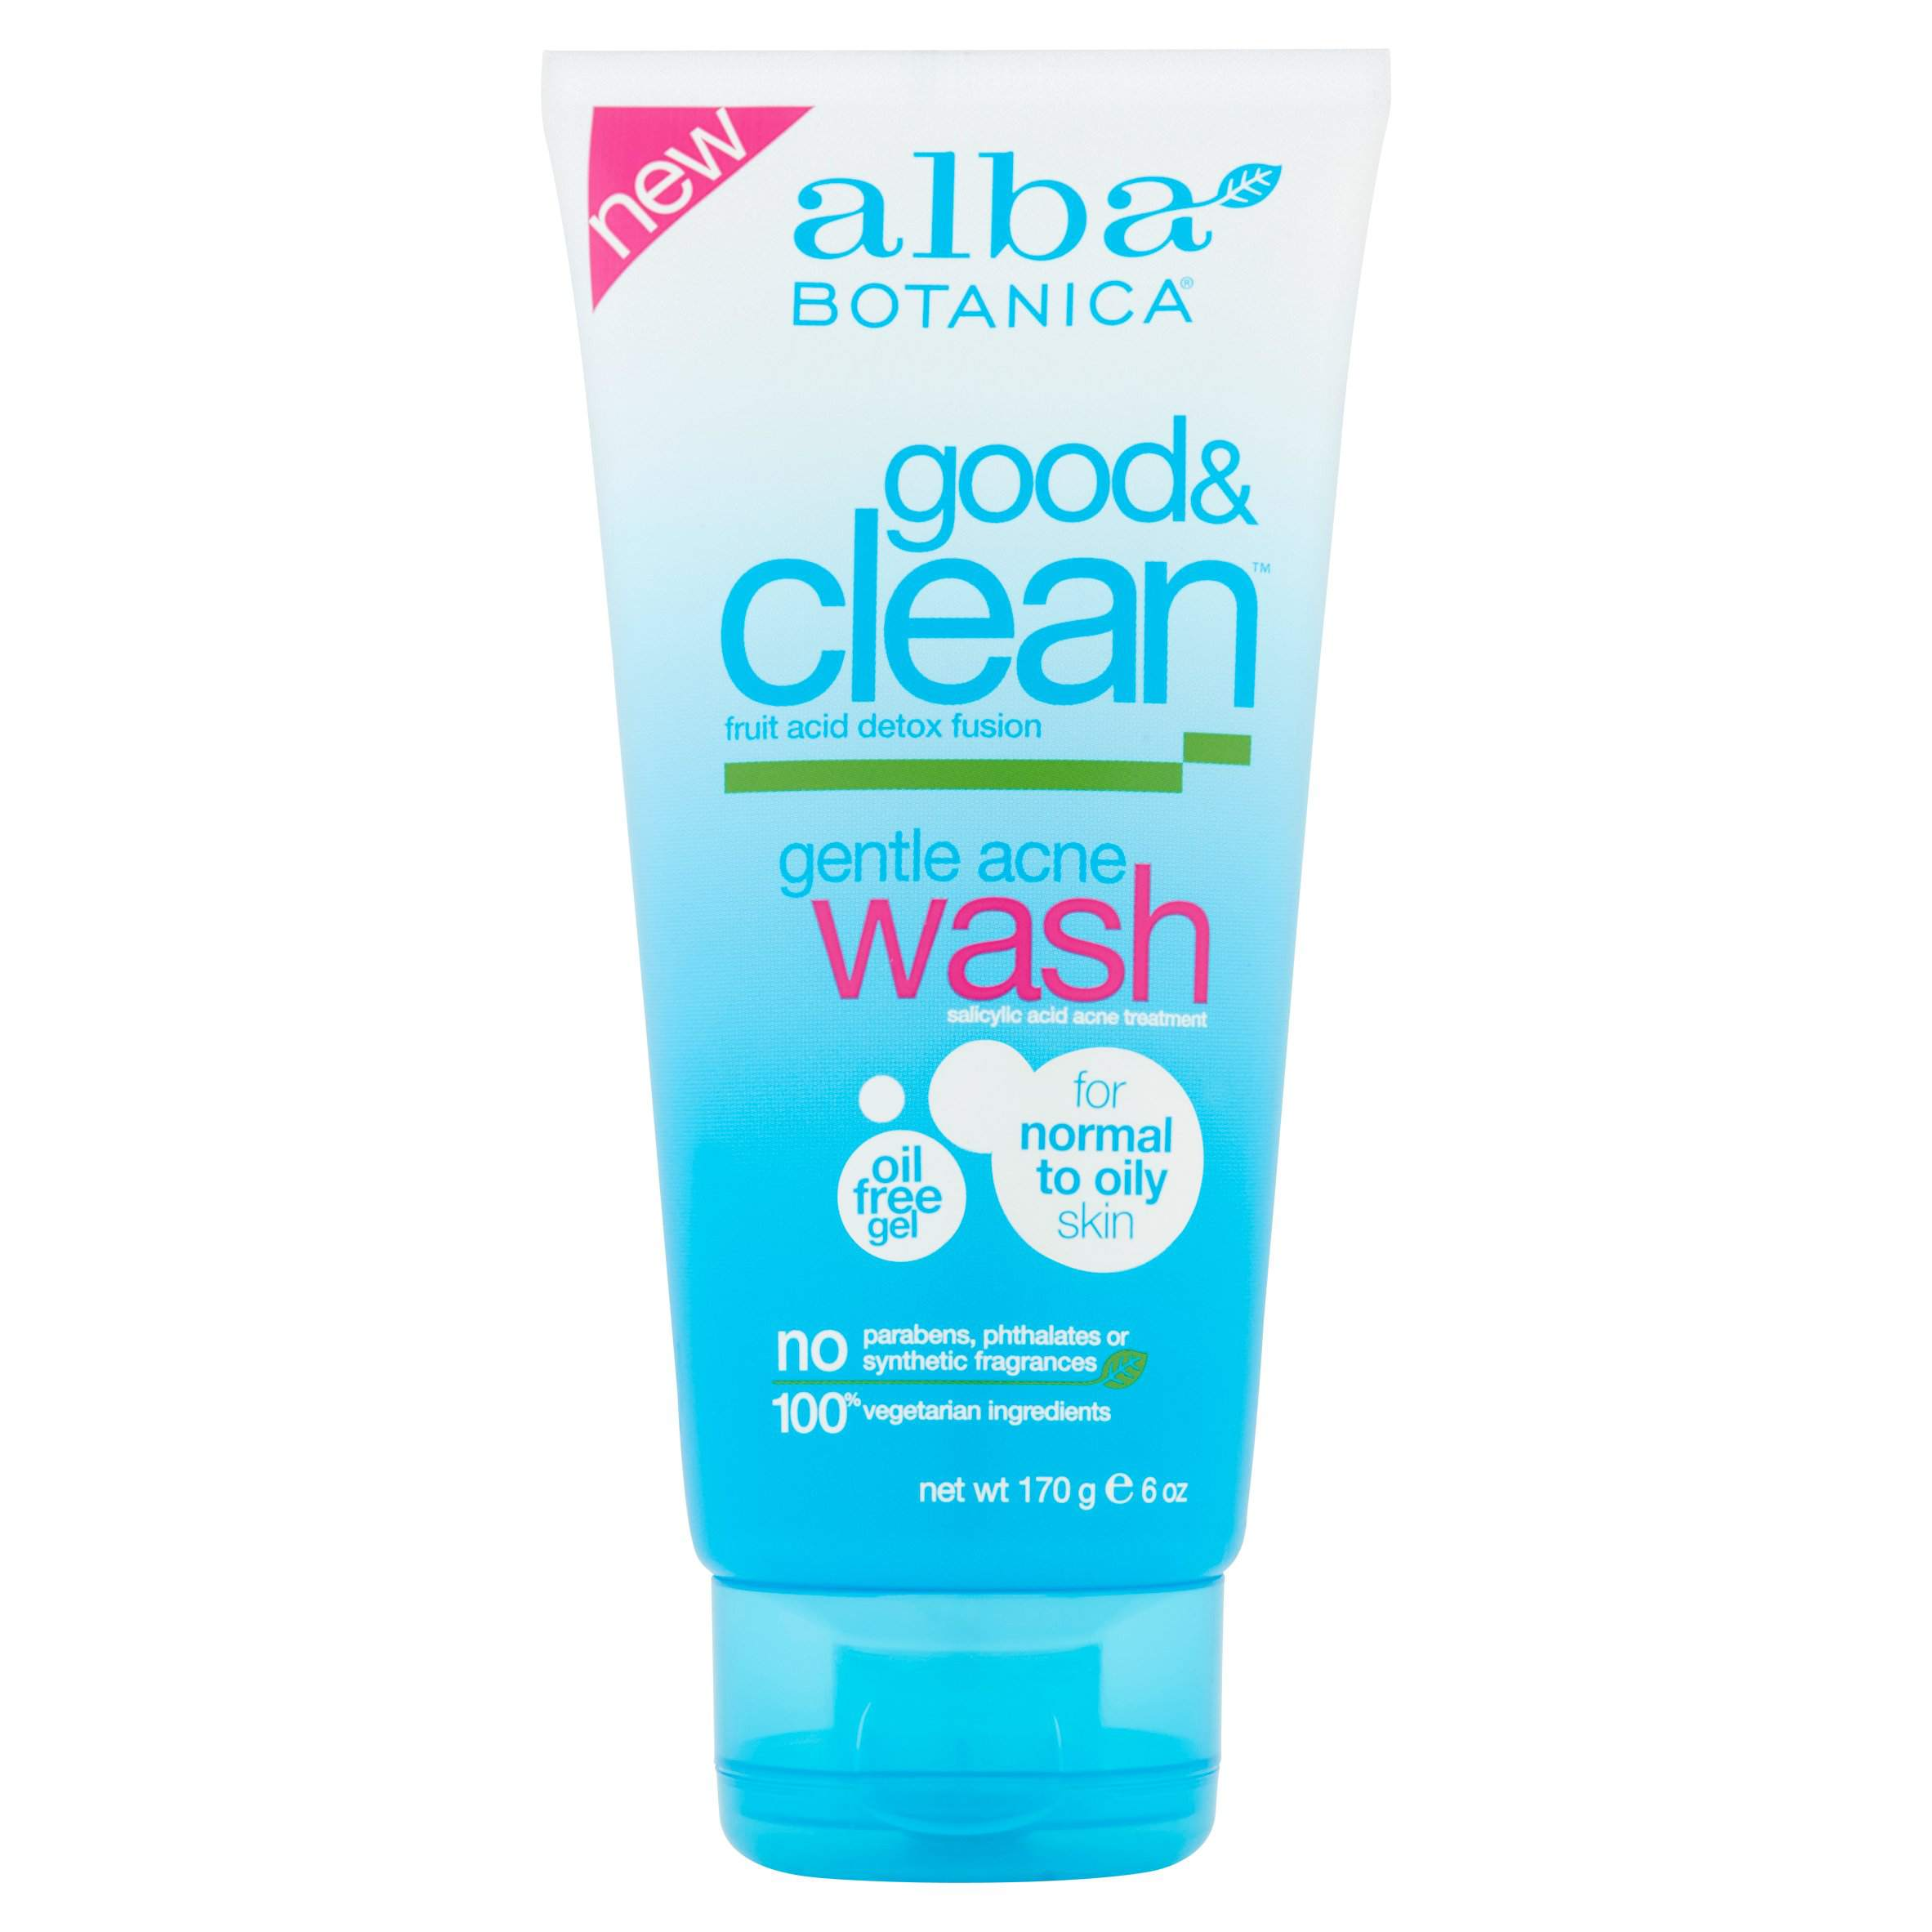 The 10 Best Acne Face Washes At Walmart In 2019